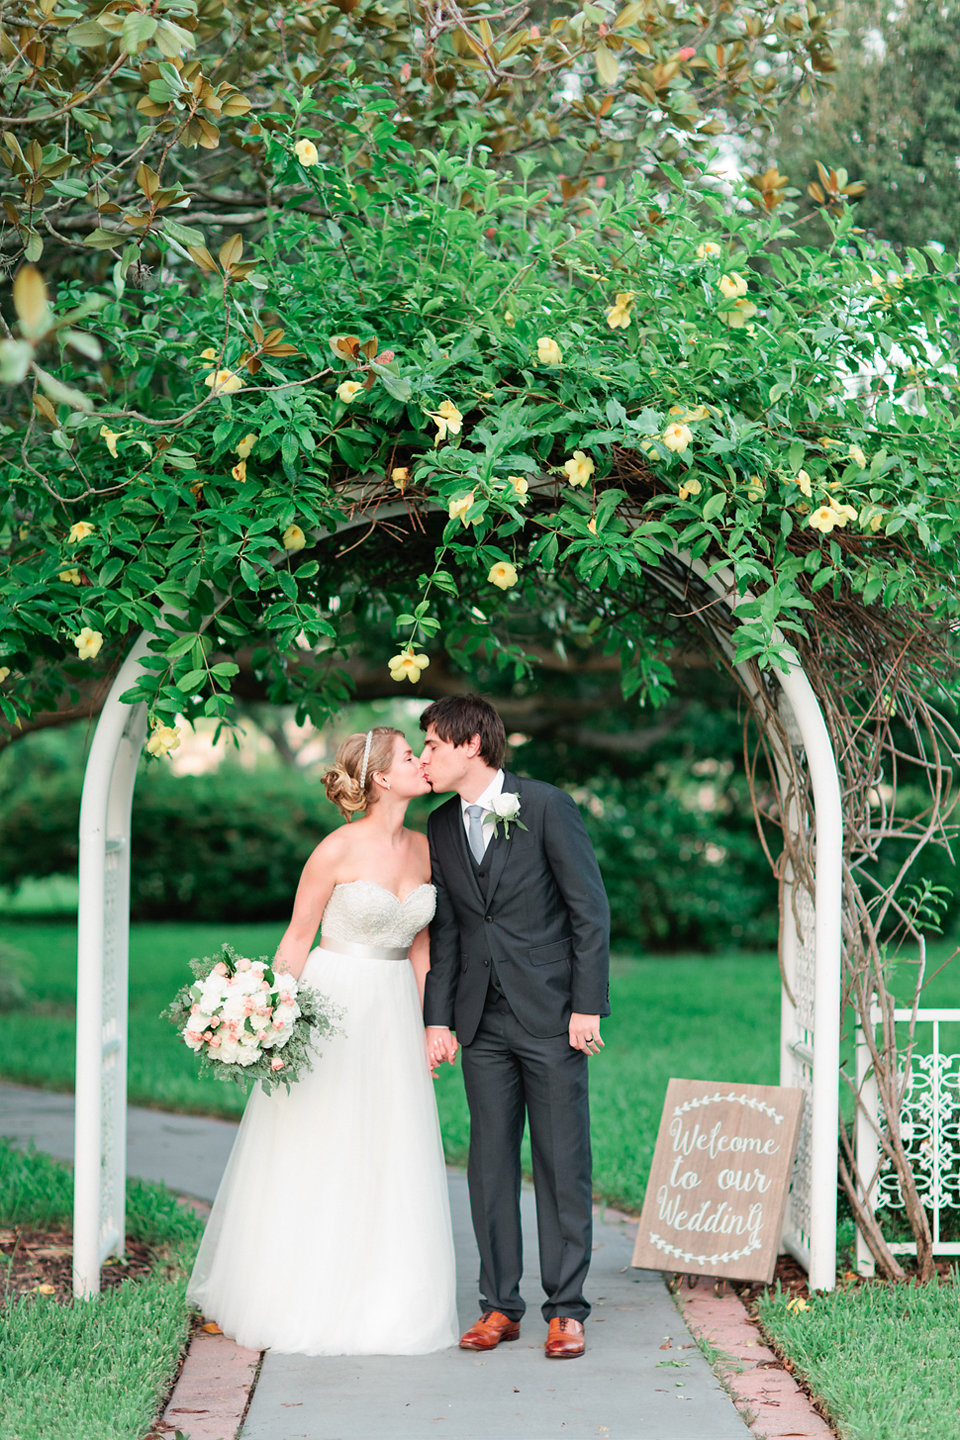 The couple posed beneath the entrance trellis, blooming with a floral vine.